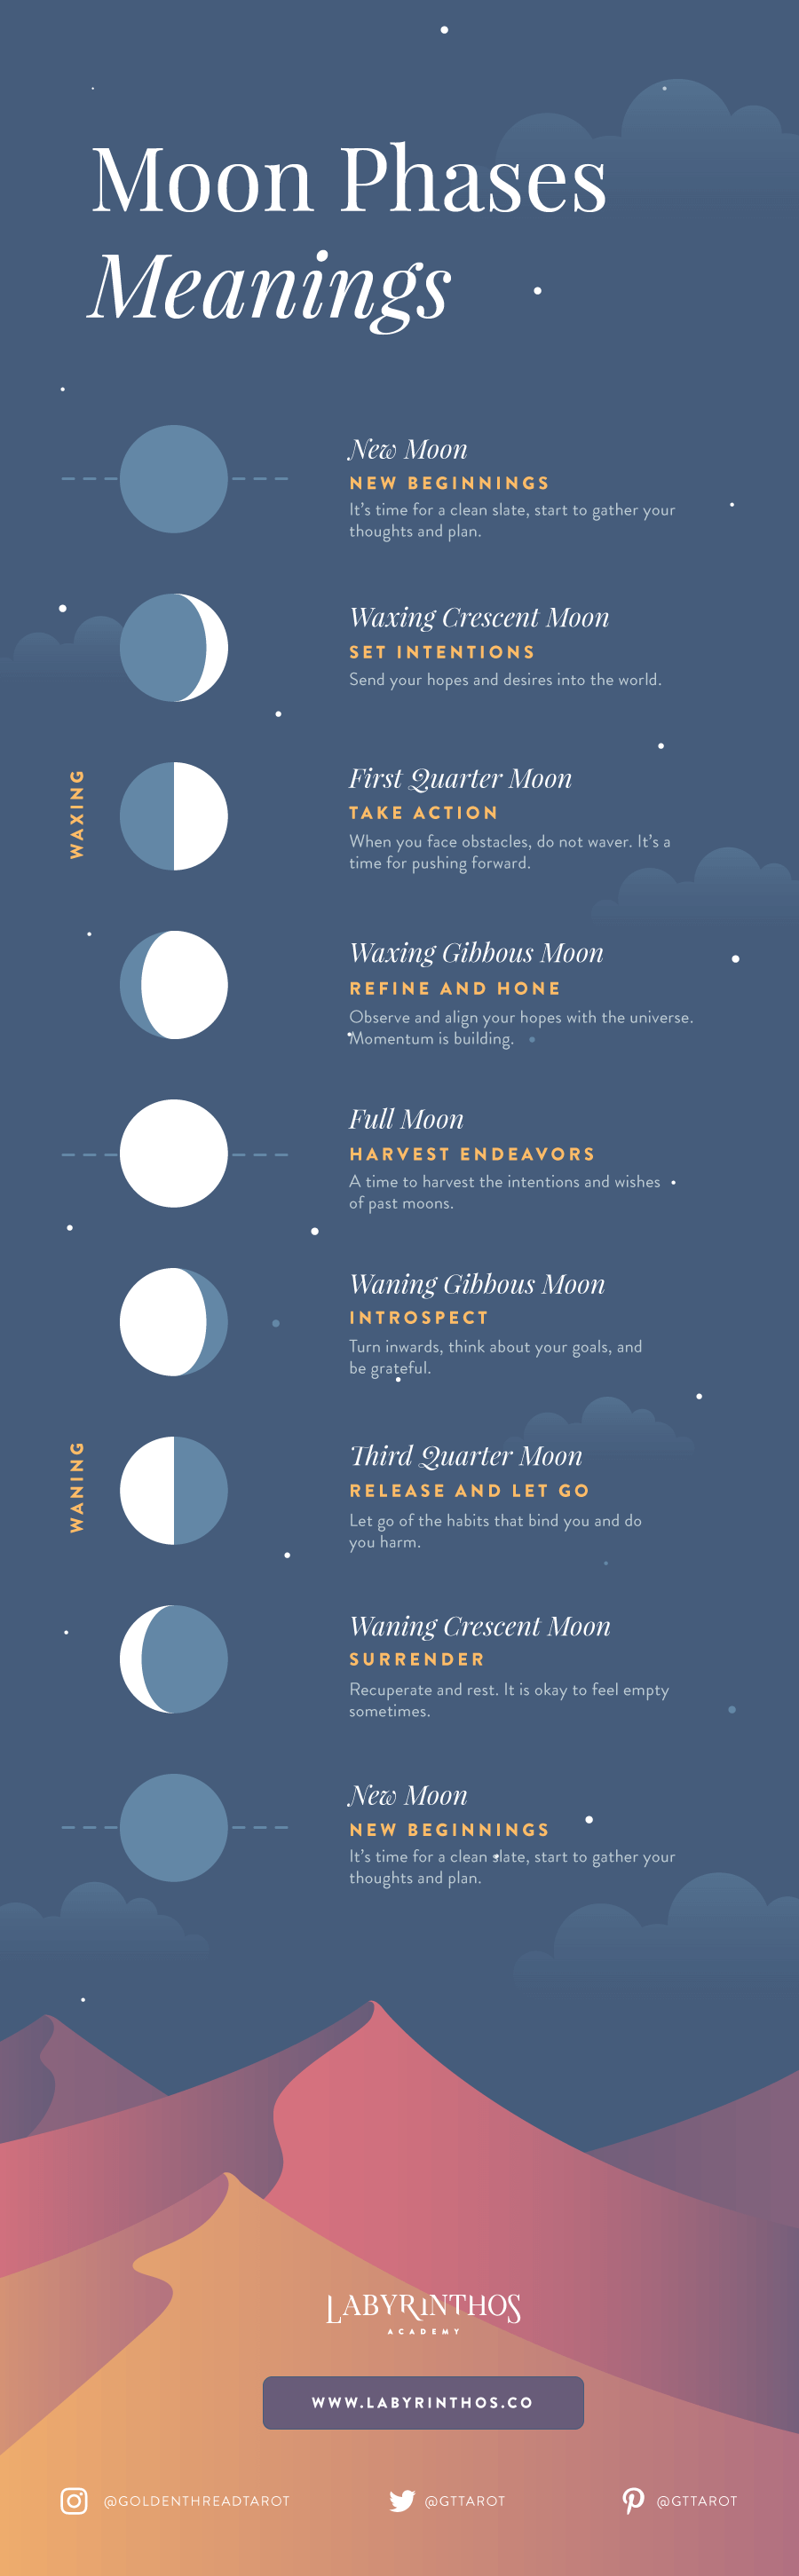 Moon Phases Meanings Infographic: A Beginner's Framework ...